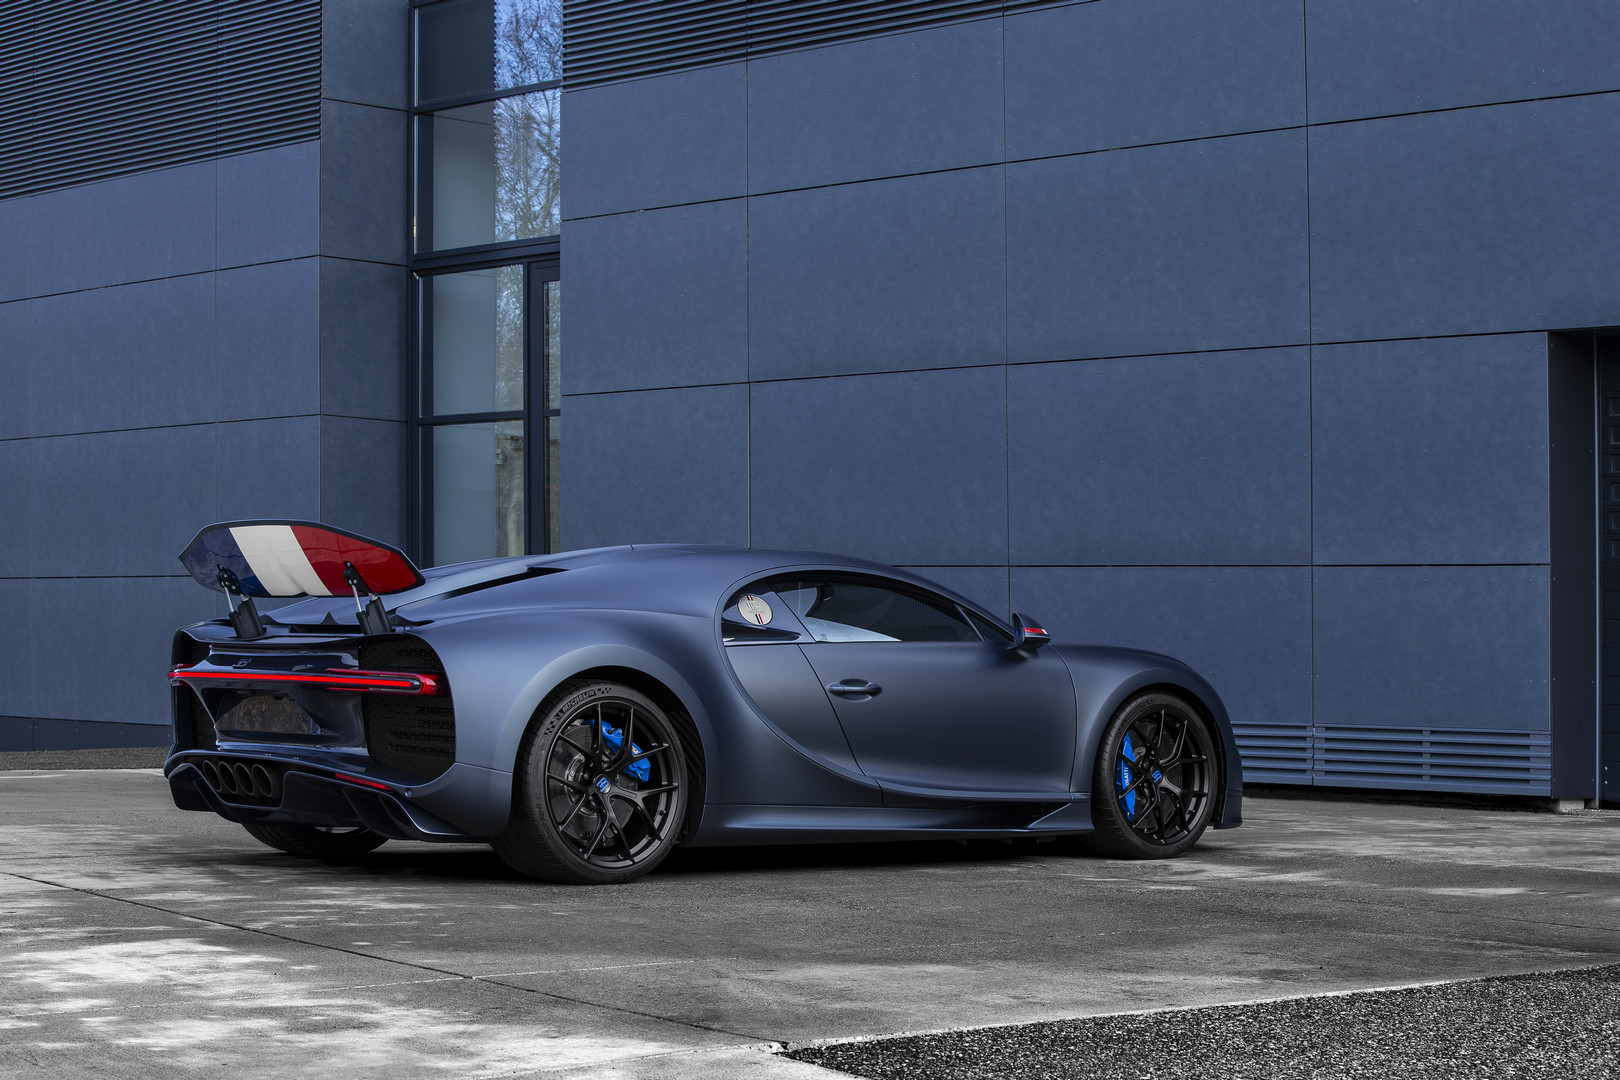 Chiron '110 ans Bugatti' revealed